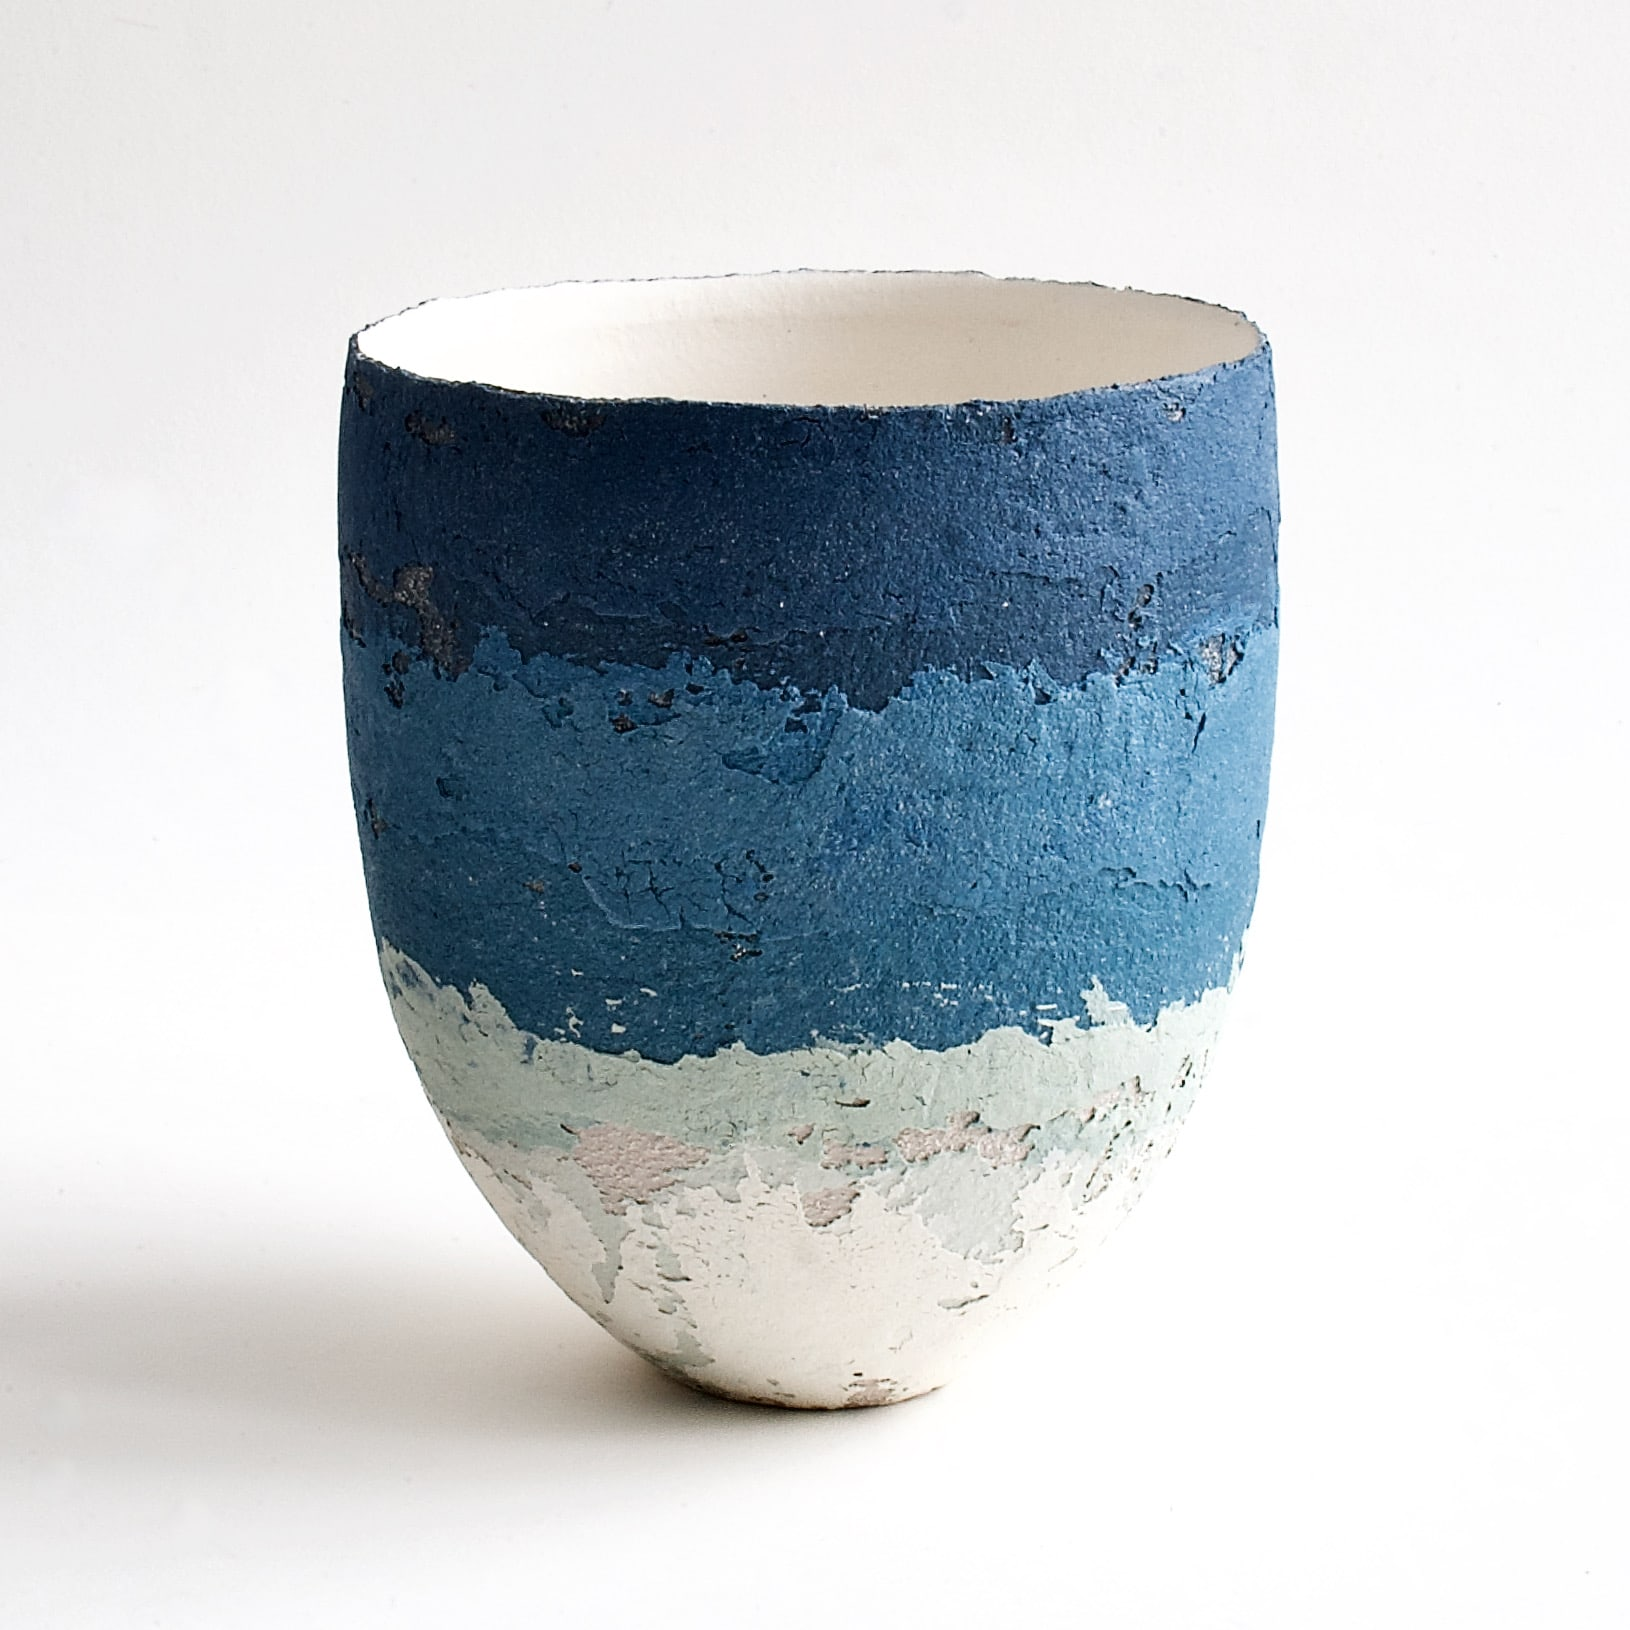 """<span class=""""link fancybox-details-link""""><a href=""""/artists/79-clare-conrad/works/8120-clare-conrad-vessel-white-interior-2021/"""">View Detail Page</a></span><div class=""""artist""""><strong>Clare Conrad</strong></div> b. 1948 <div class=""""title""""><em>Vessel, white interior</em>, 2021</div> <div class=""""medium"""">wheel-thrown stoneware </div> <div class=""""dimensions"""">h. 16.5 cm </div><div class=""""price"""">£330.00</div><div class=""""copyright_line"""">Own Art: £33 x 10 Months, 0% APR</div>"""